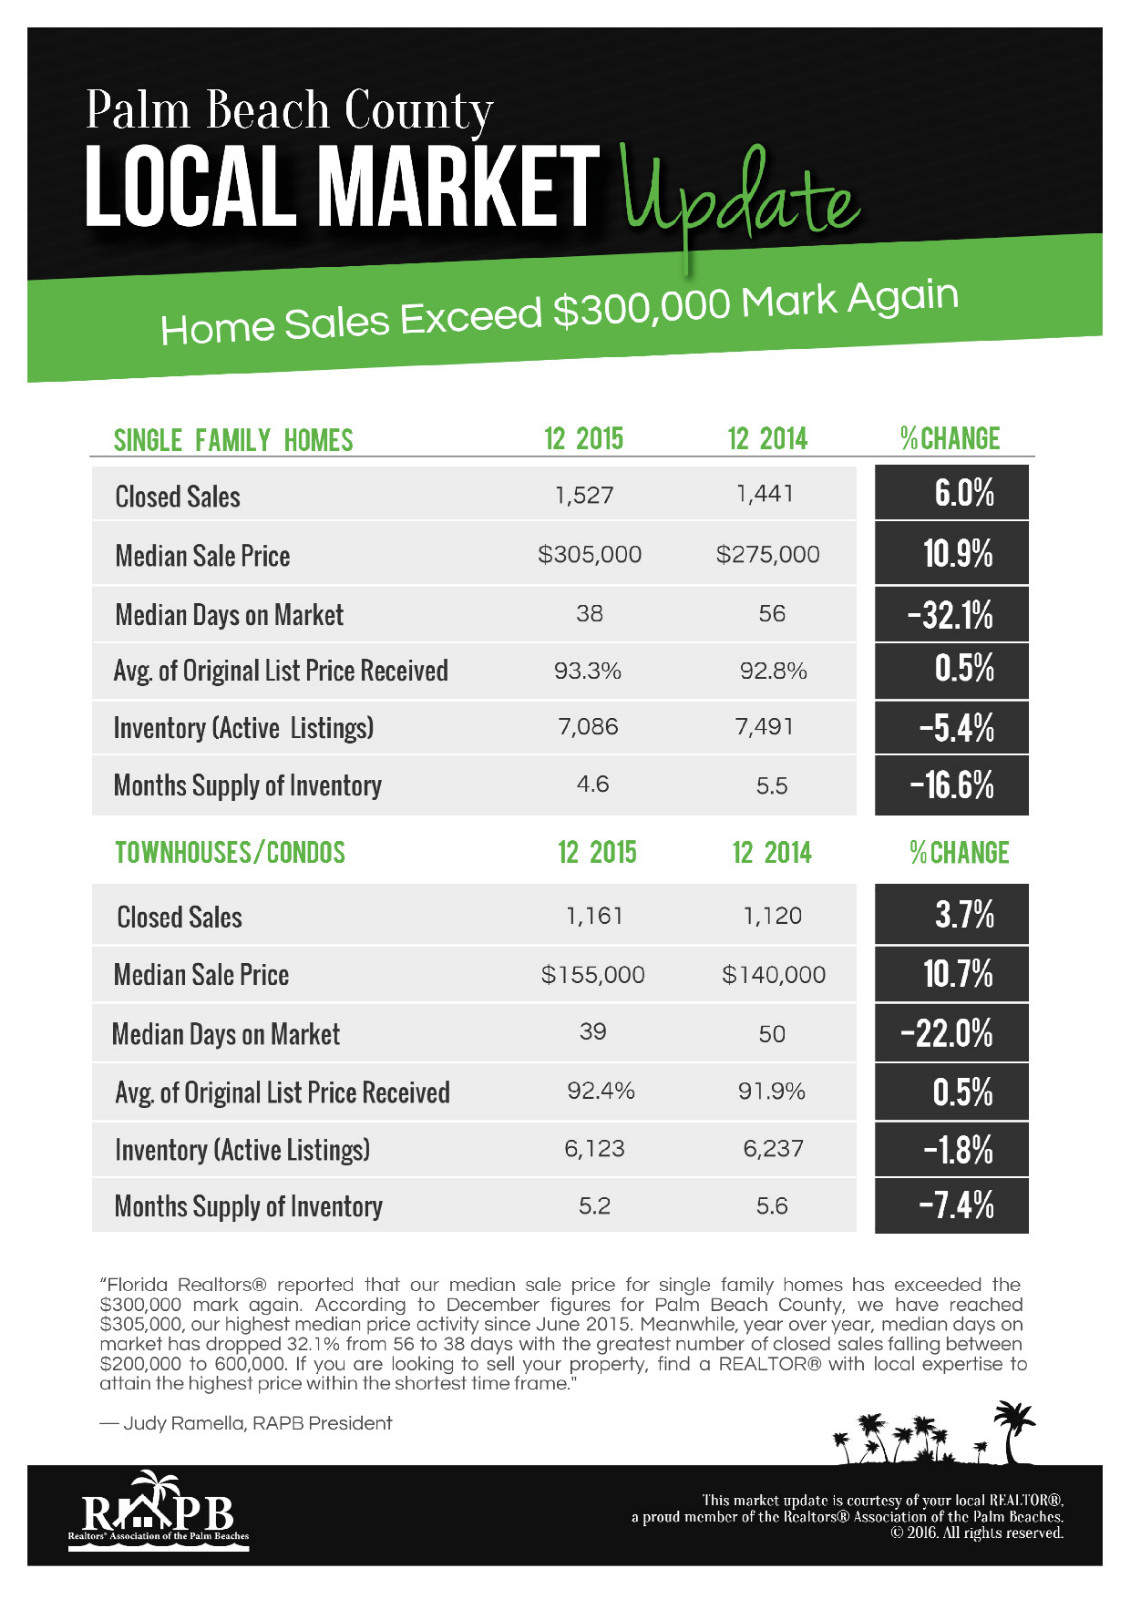 Palm Beach County Real Estate Market Update by Martin Group Realtors